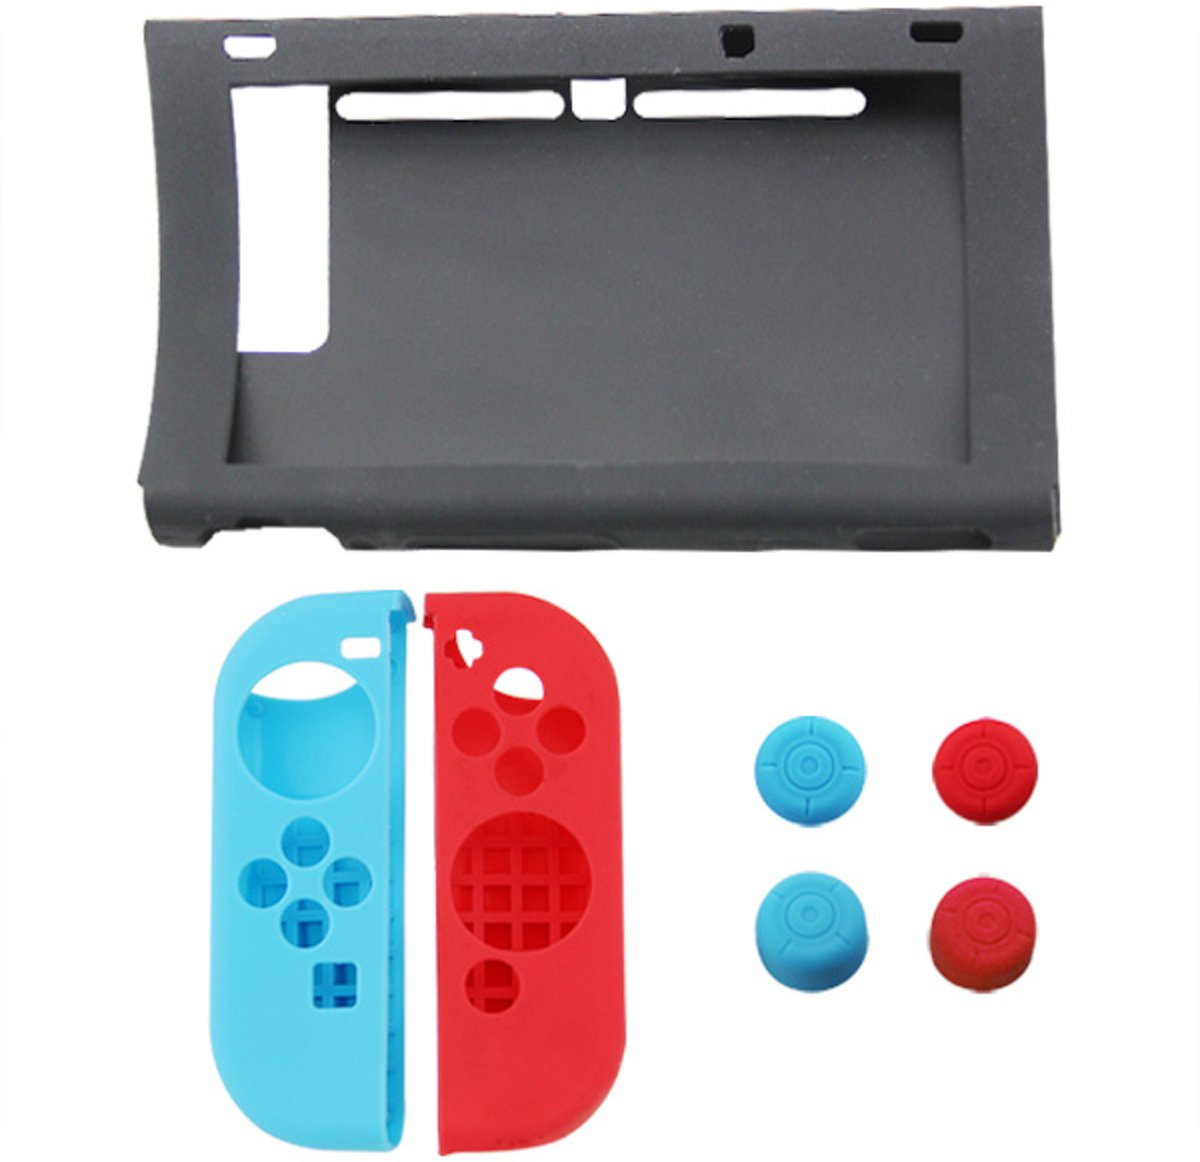 Nintendo Switch - Siliconen case set 7-delig